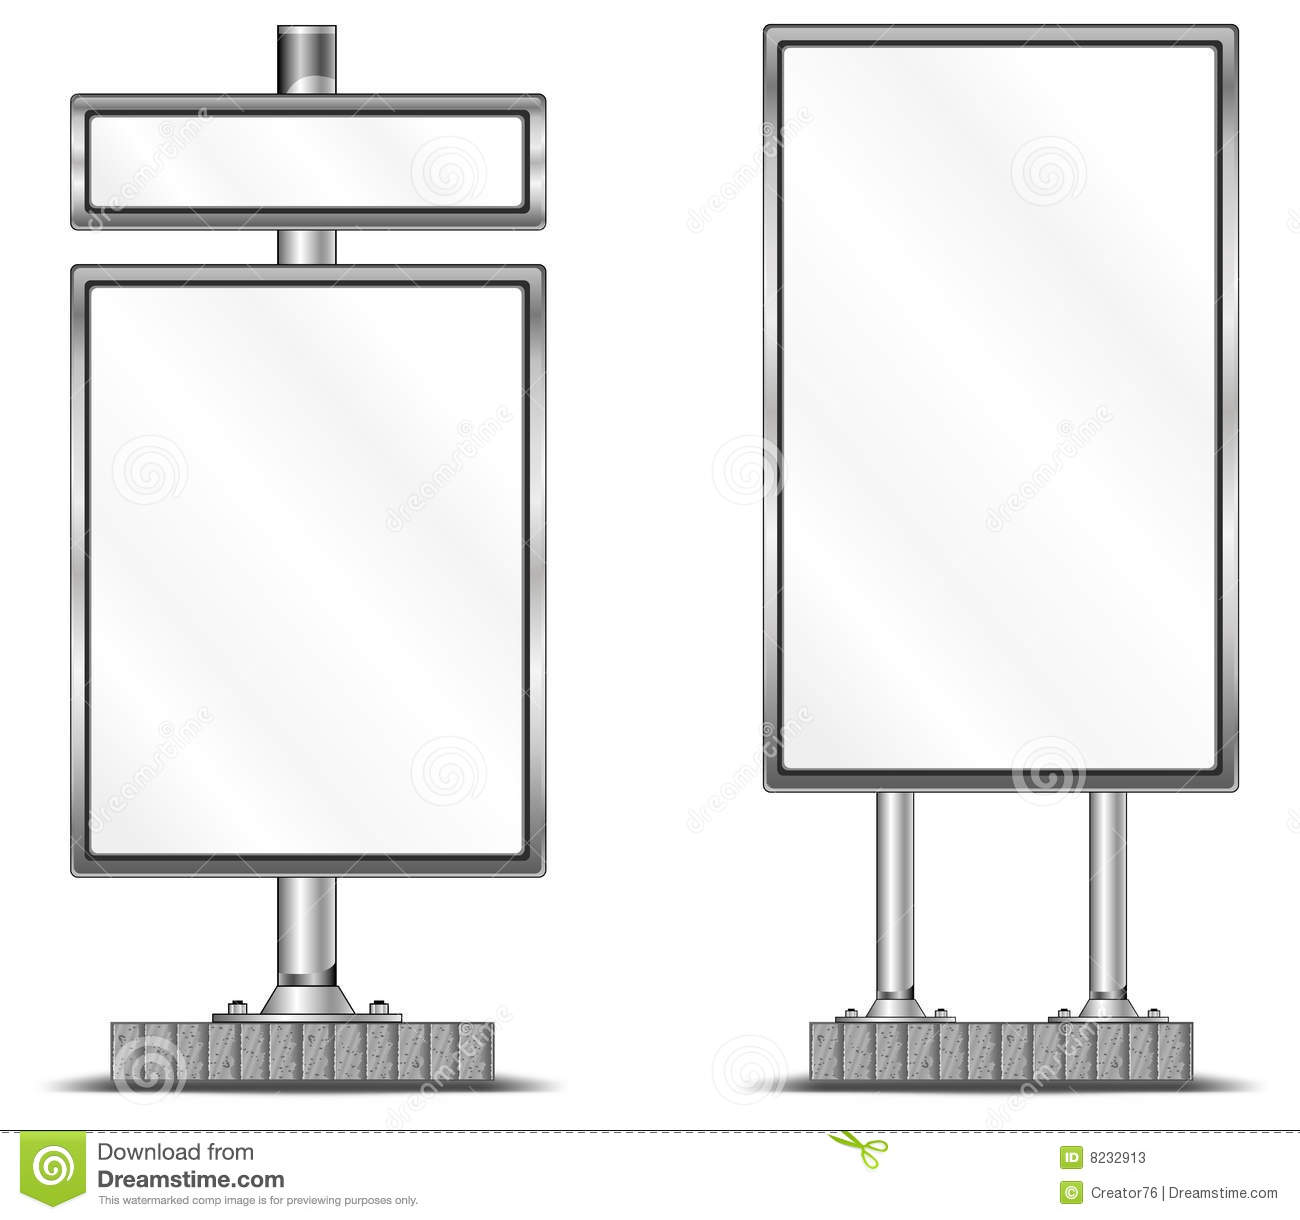 how to build a billboard sign